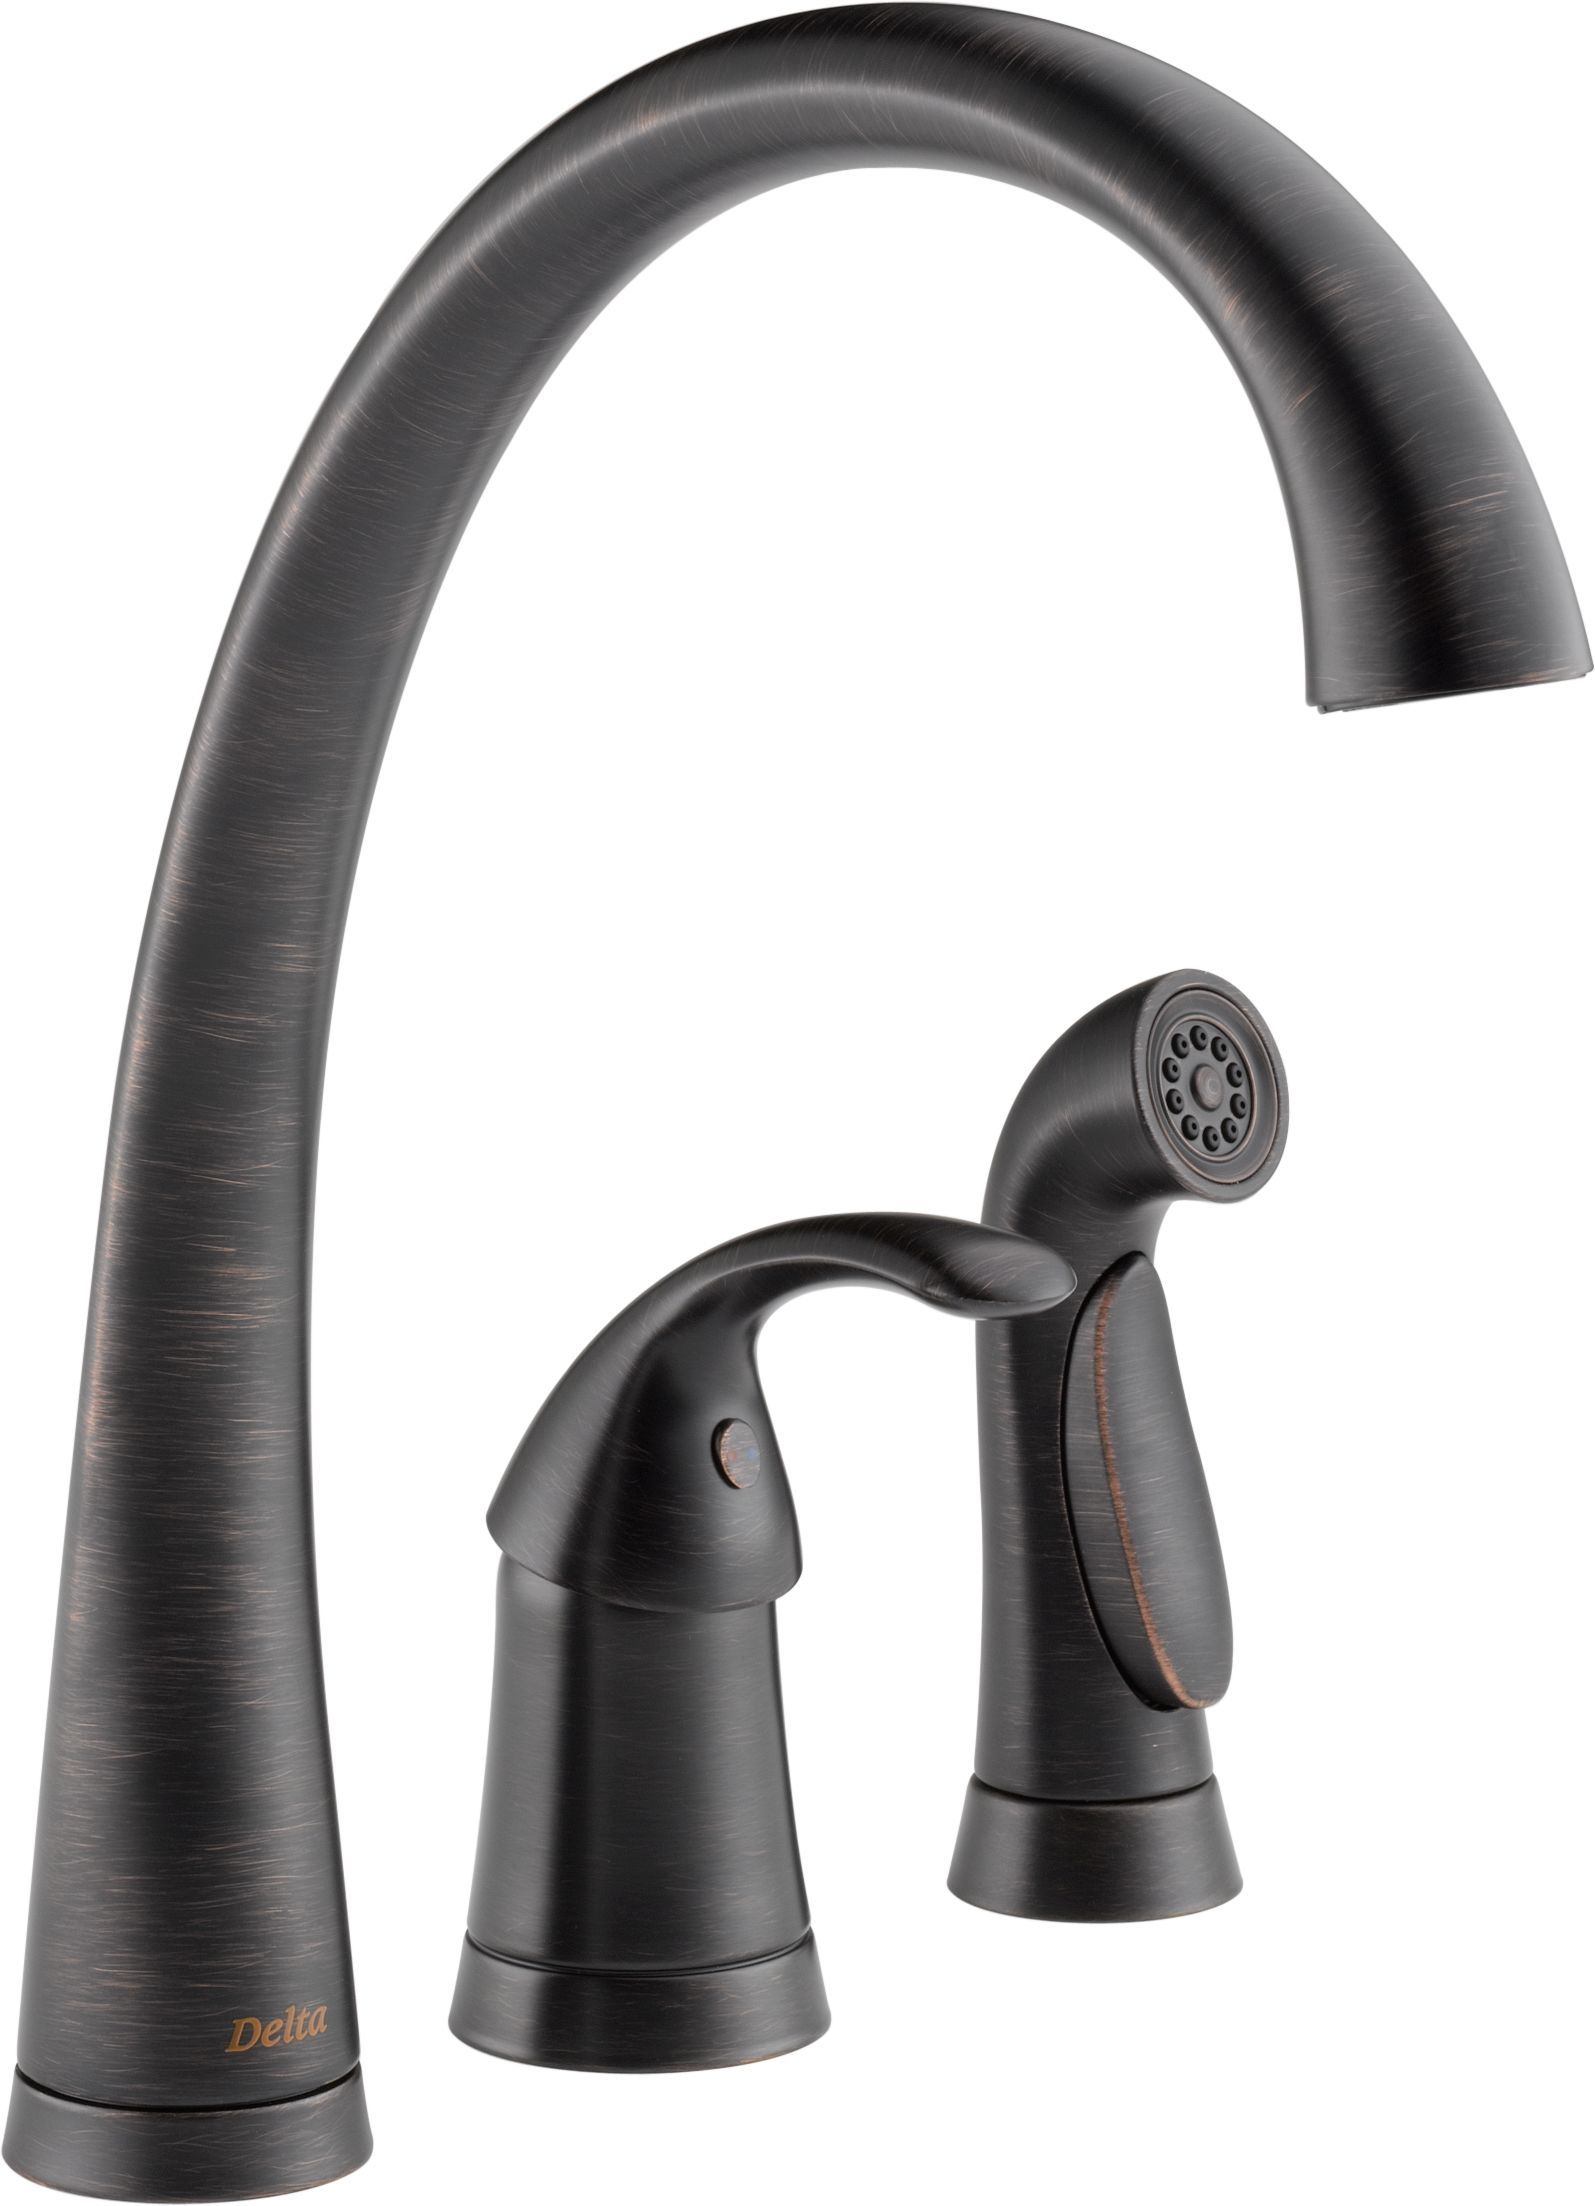 handle luxury perfect download replacement hose sink kitchen tube image faucet installation single outlet of delta and